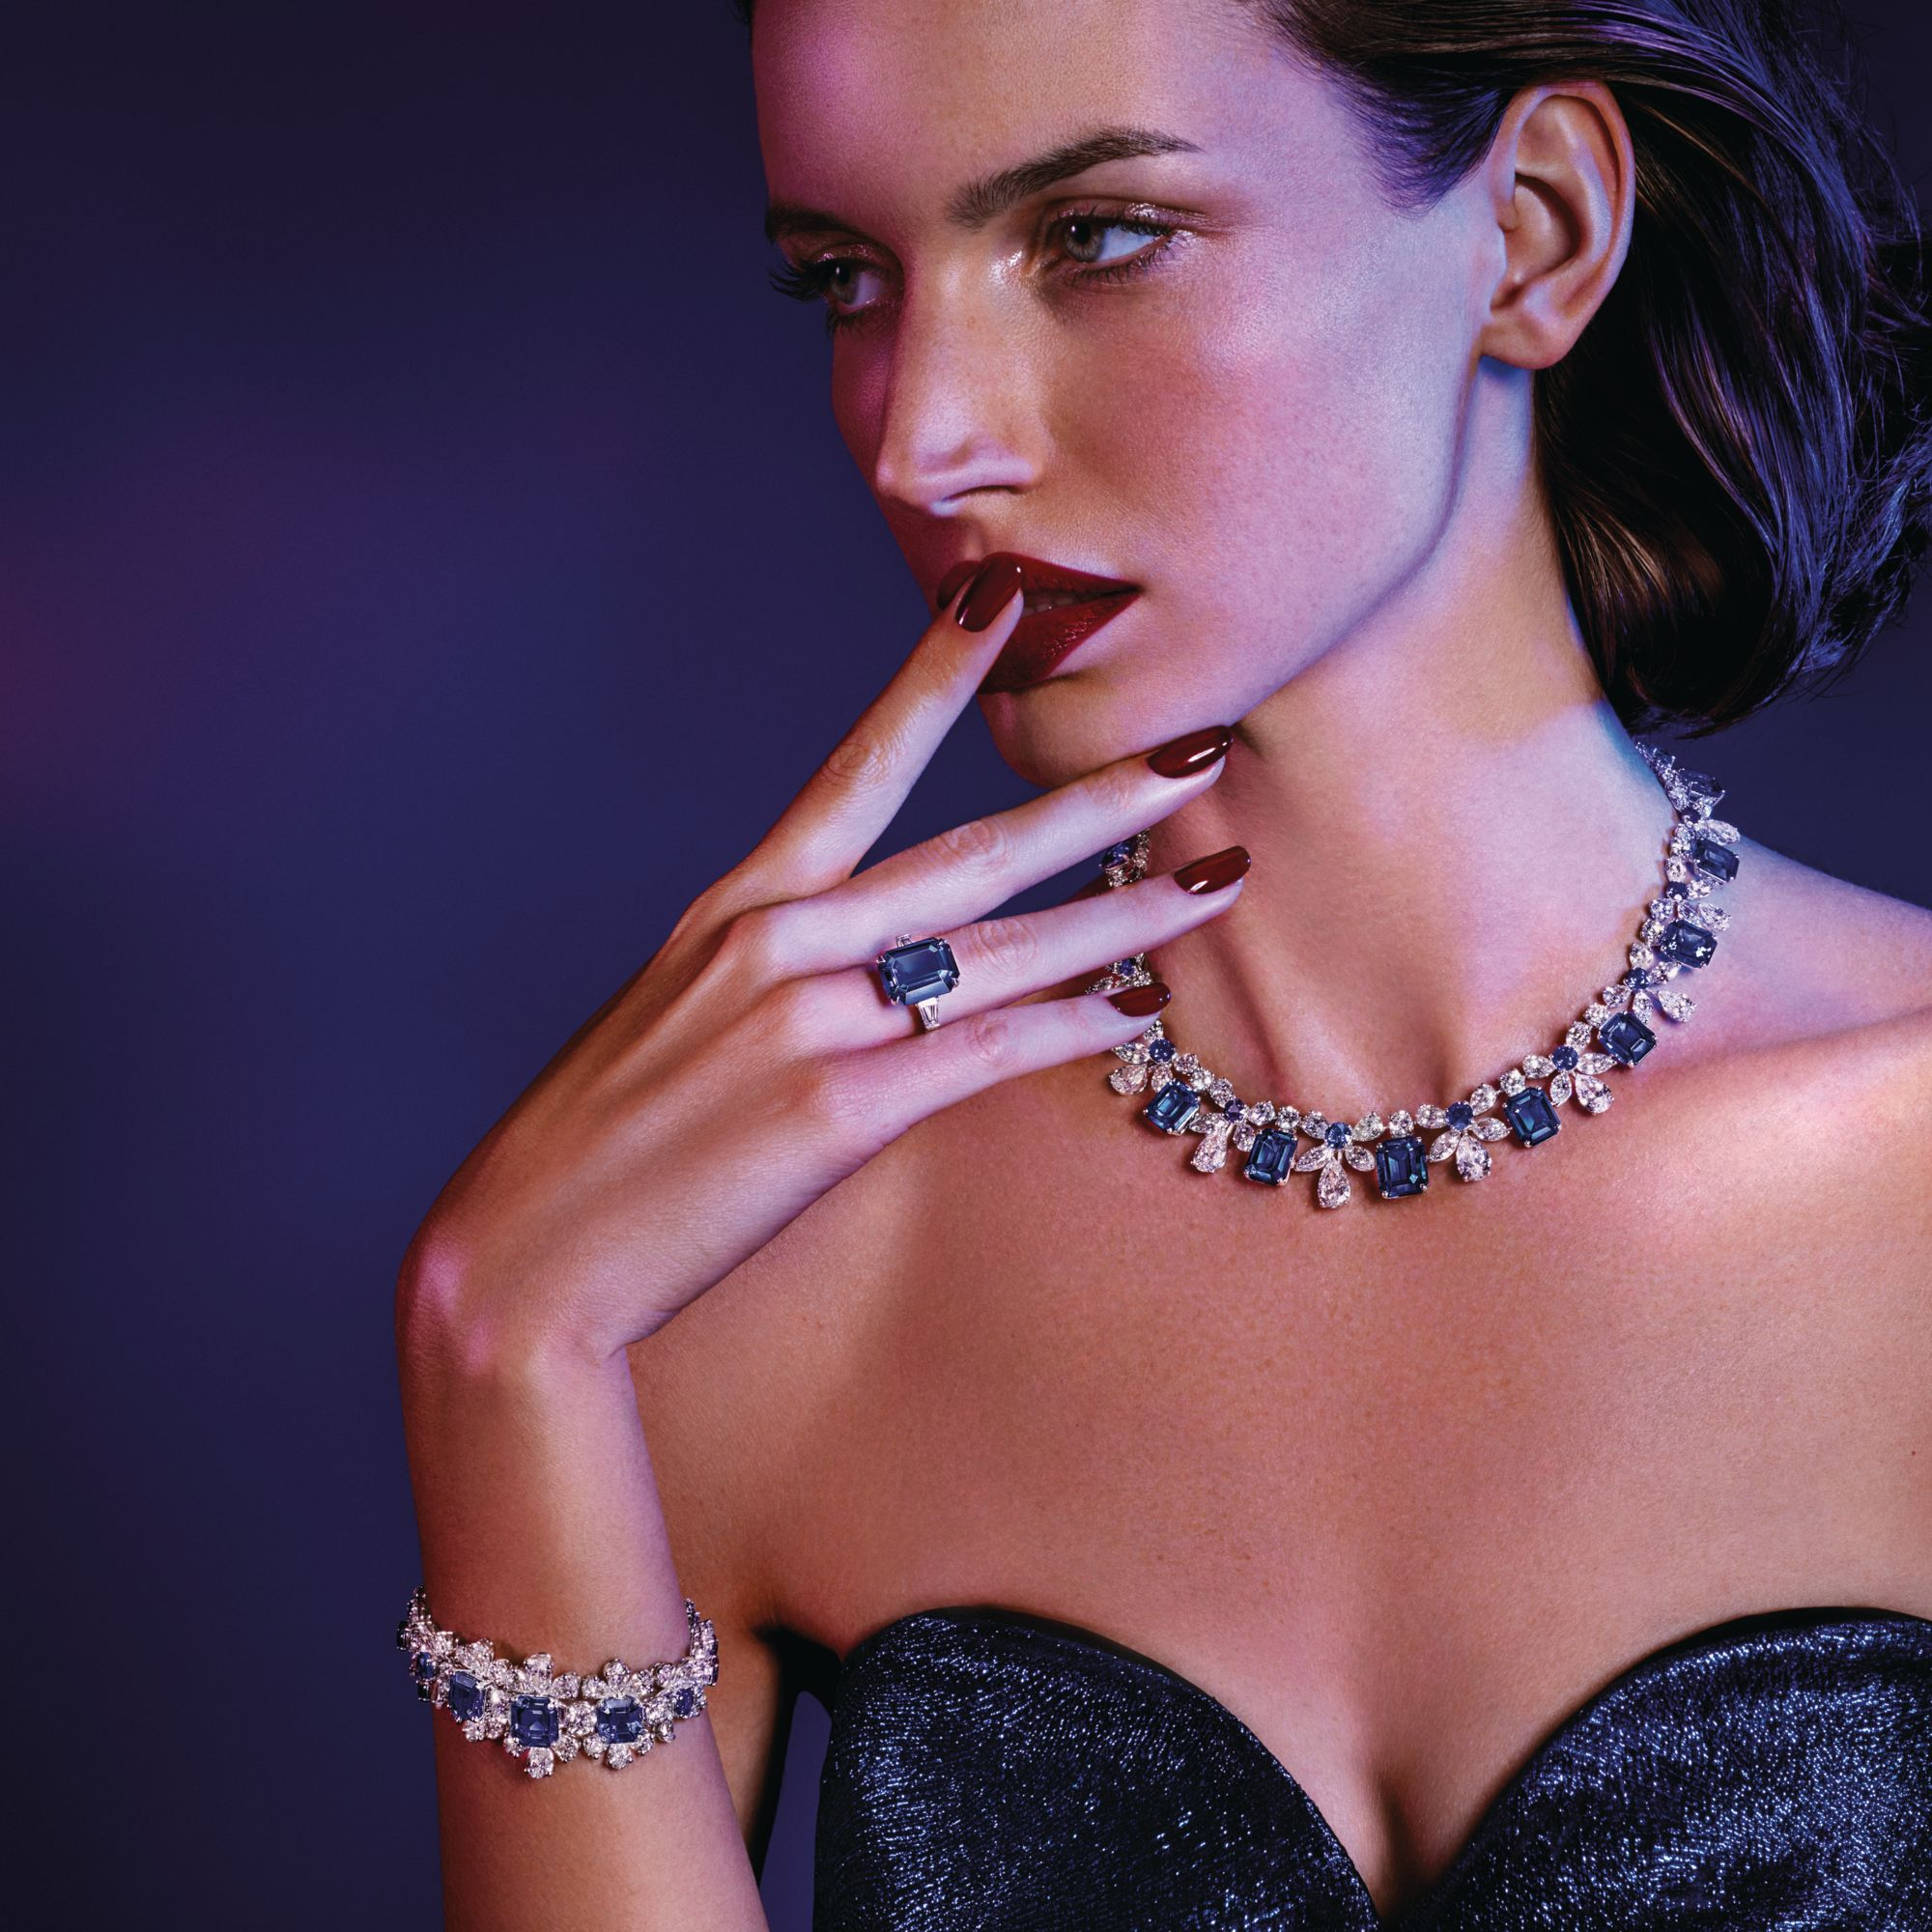 Necklace, bracelet and ring in white gold and platinum set with sapphires and diamonds by Graff